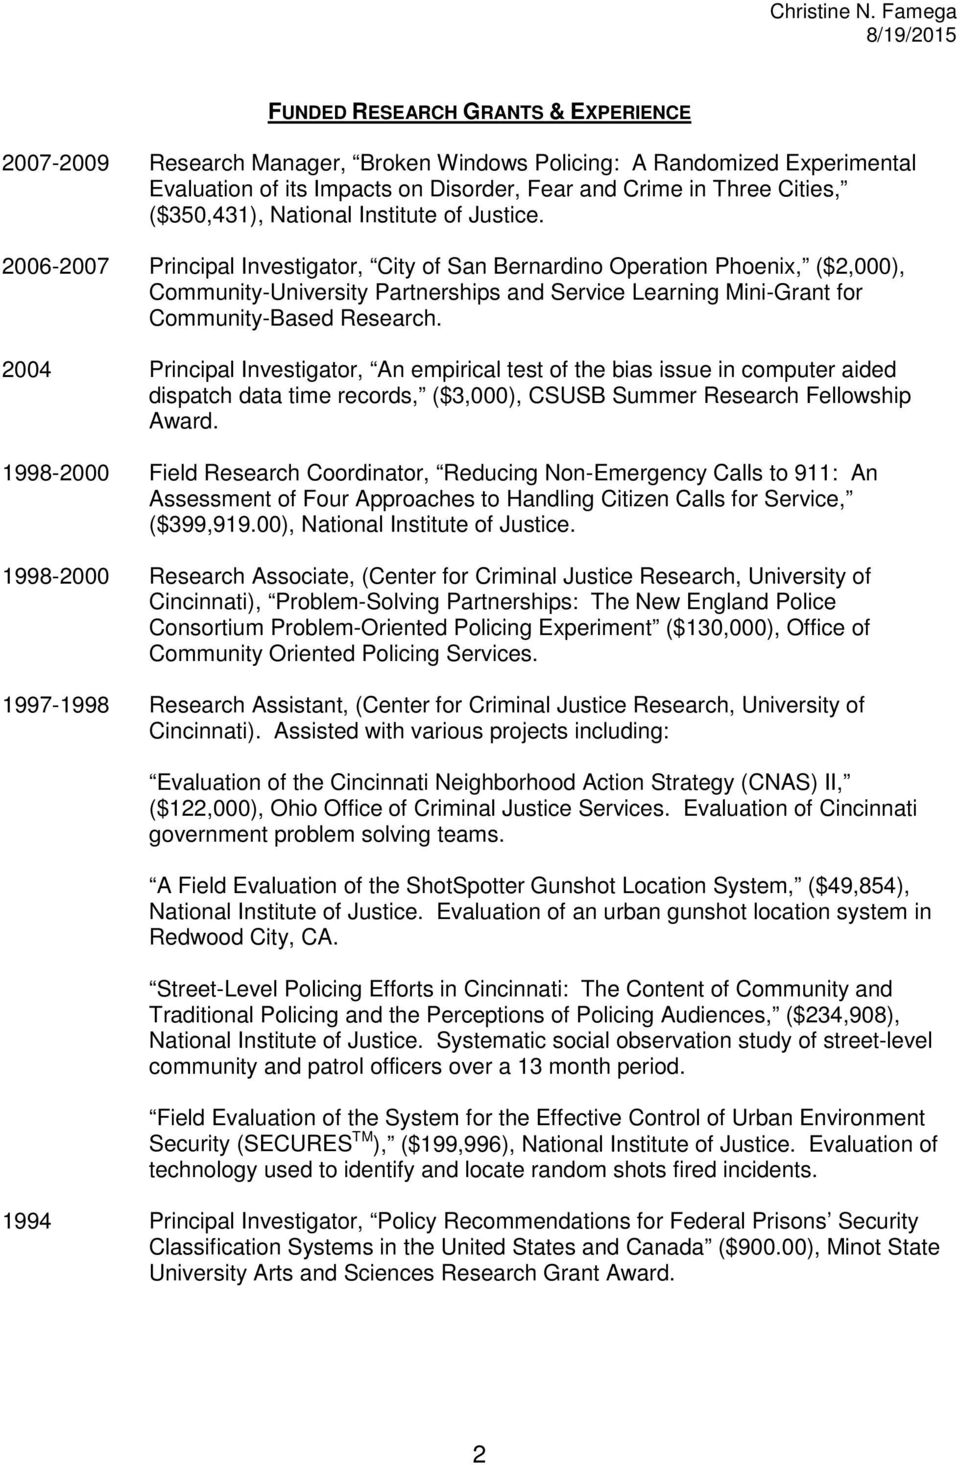 2006-2007 Principal Investigator, City of San Bernardino Operation Phoenix, ($2,000), Community-University Partnerships and Service Learning Mini-Grant for Community-Based Research.